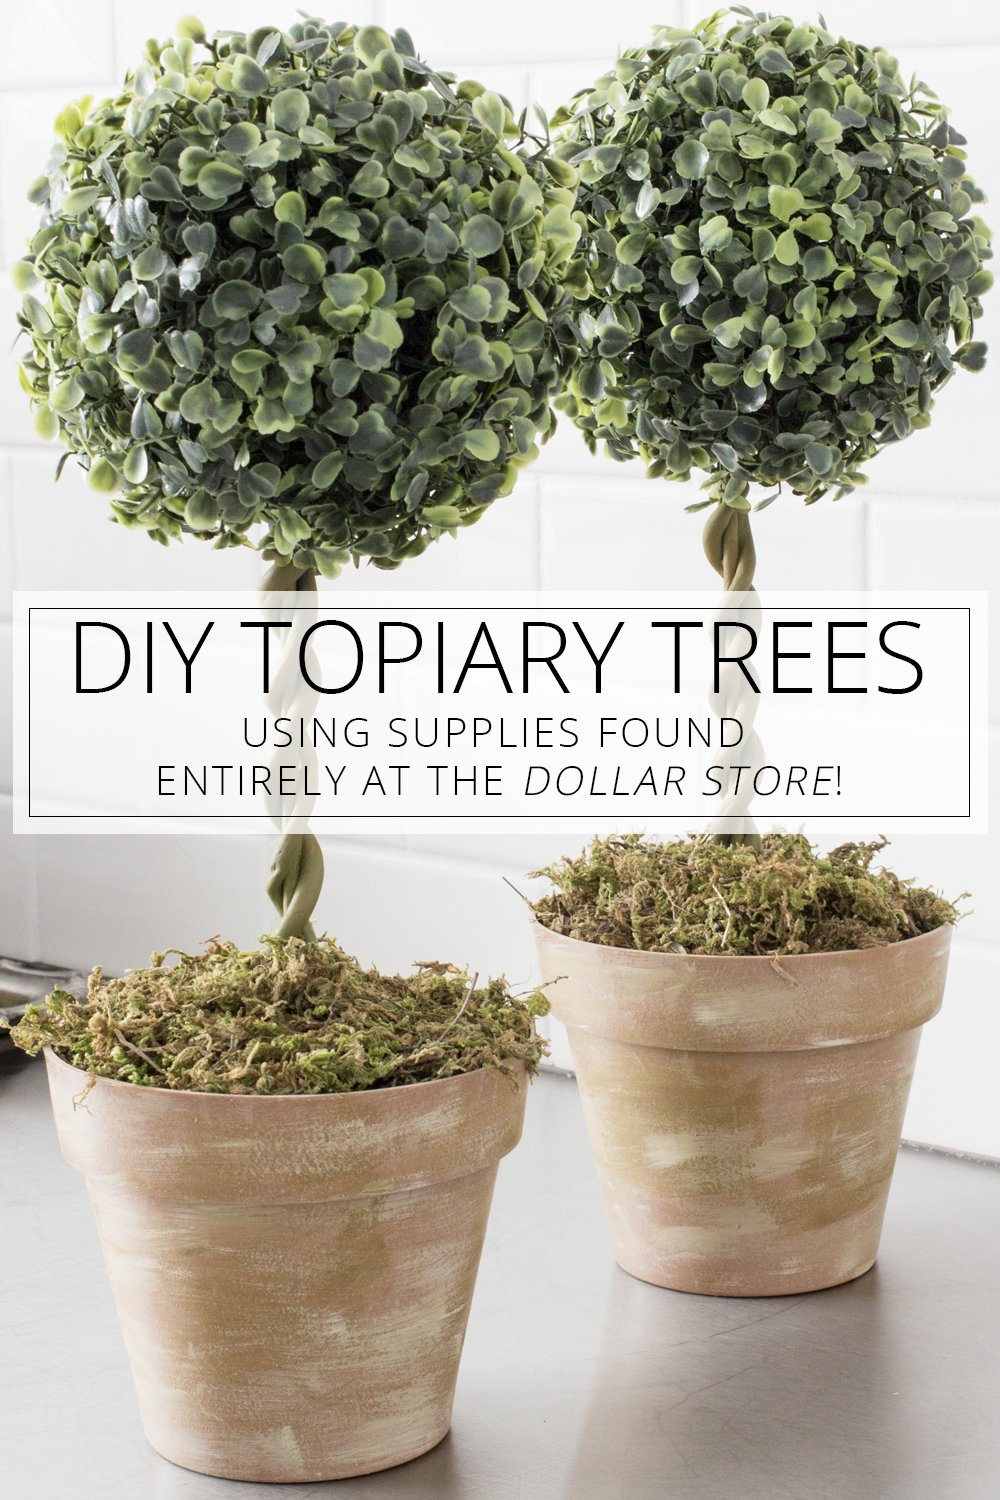 WAY Cheaper than the ones at Pier 1 or other stores! DIY Dollar Store Topiary Trees via @akadesigndota